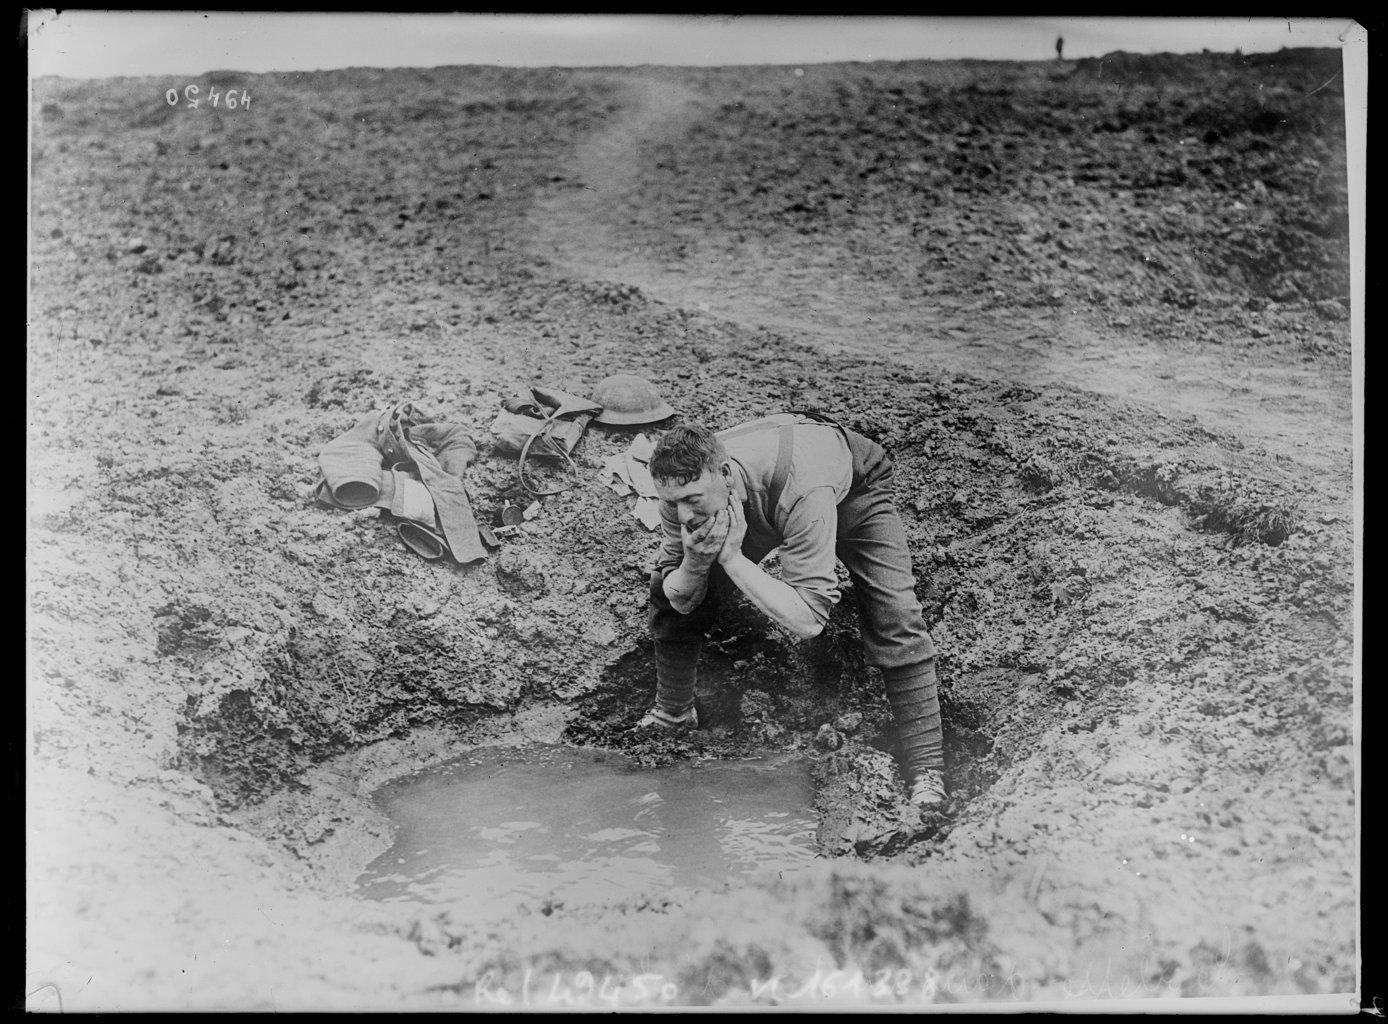 British soldier washing in the stagnant water that has collected in a shell crater, 1917.